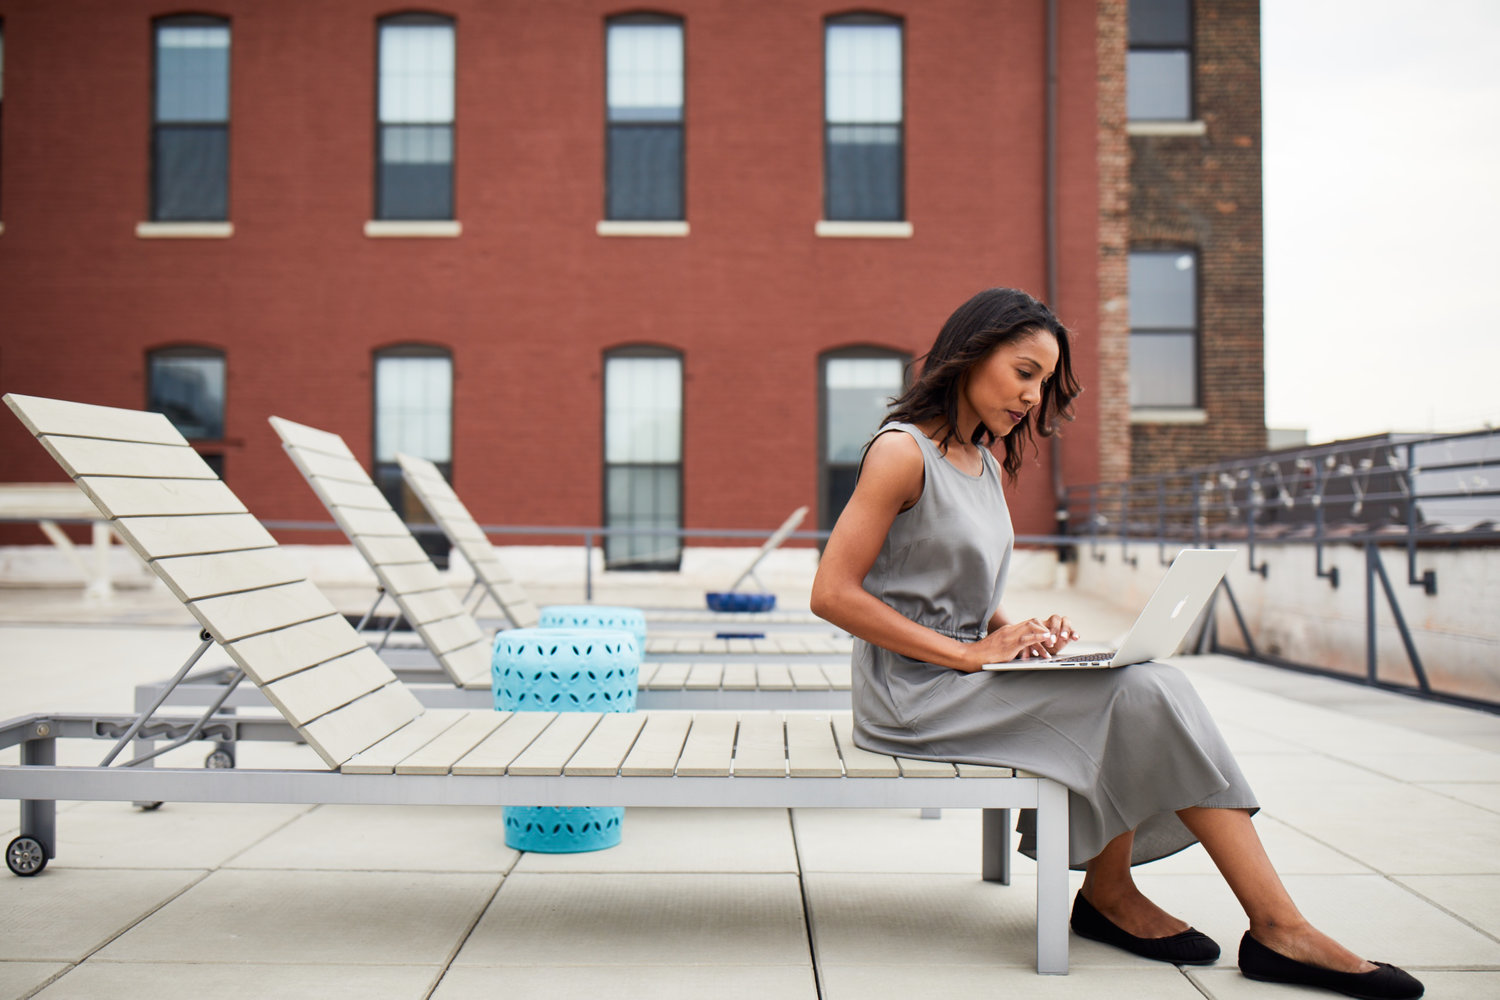 Woman working in an outdoor rooftop office environment